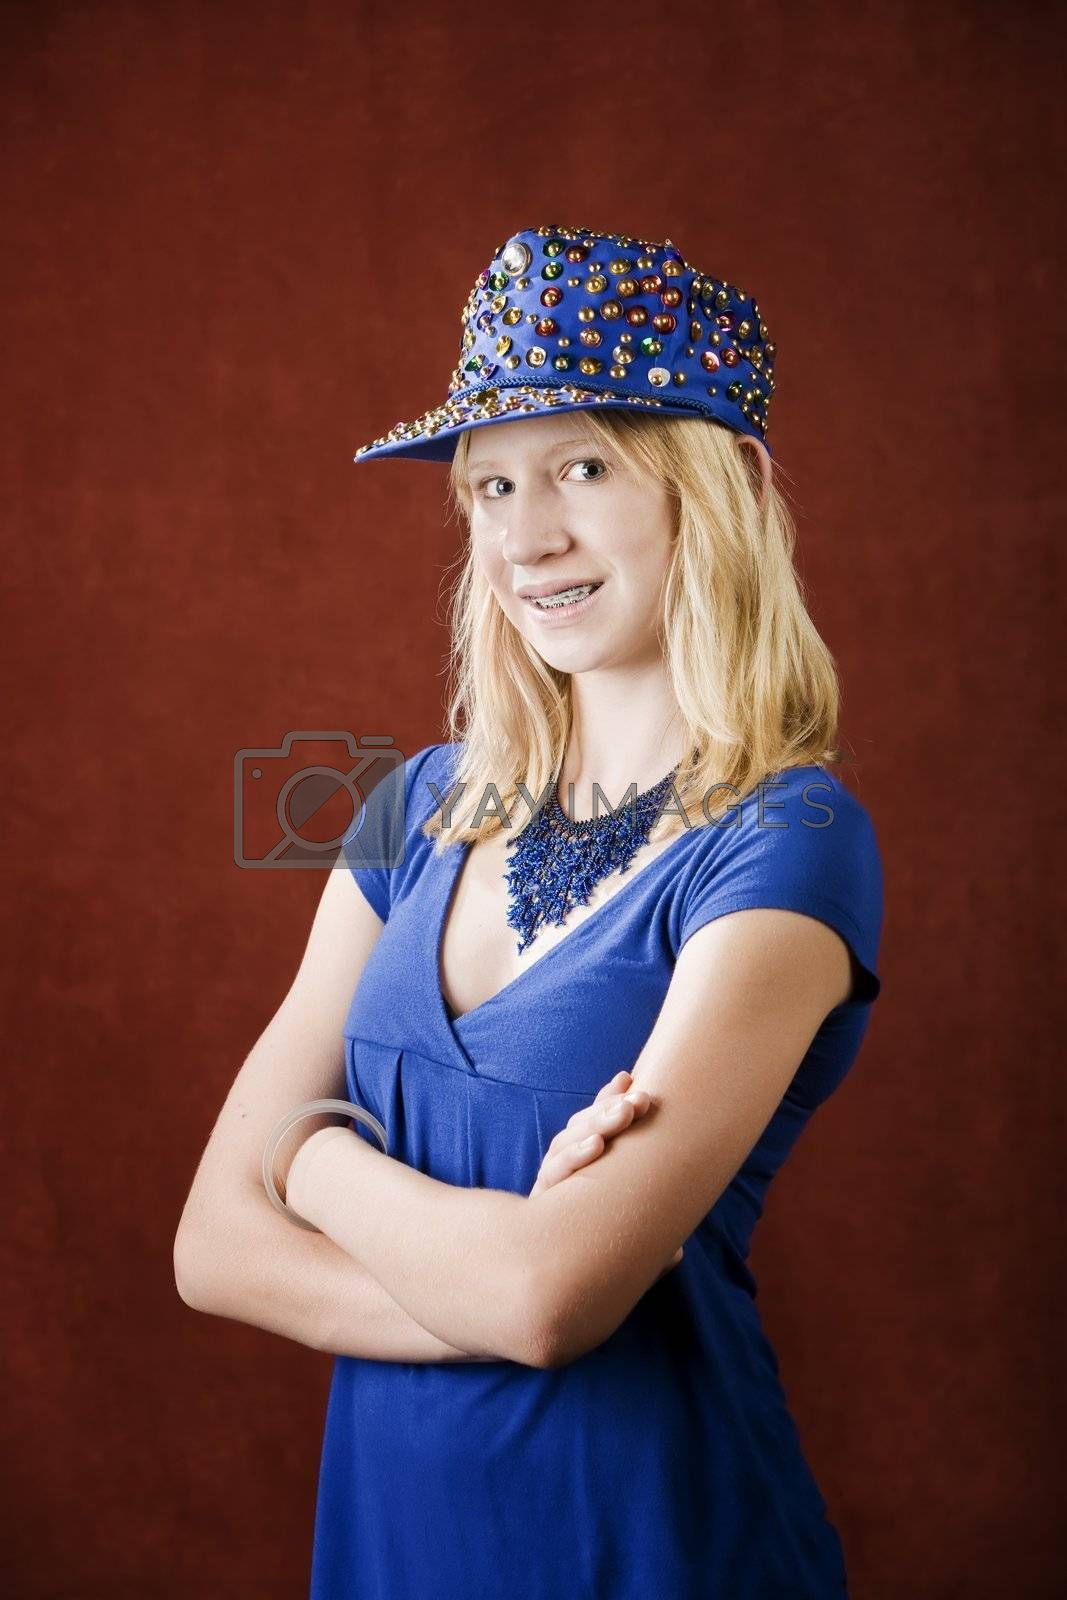 Teenage girl with braces wearing a hat with sequins